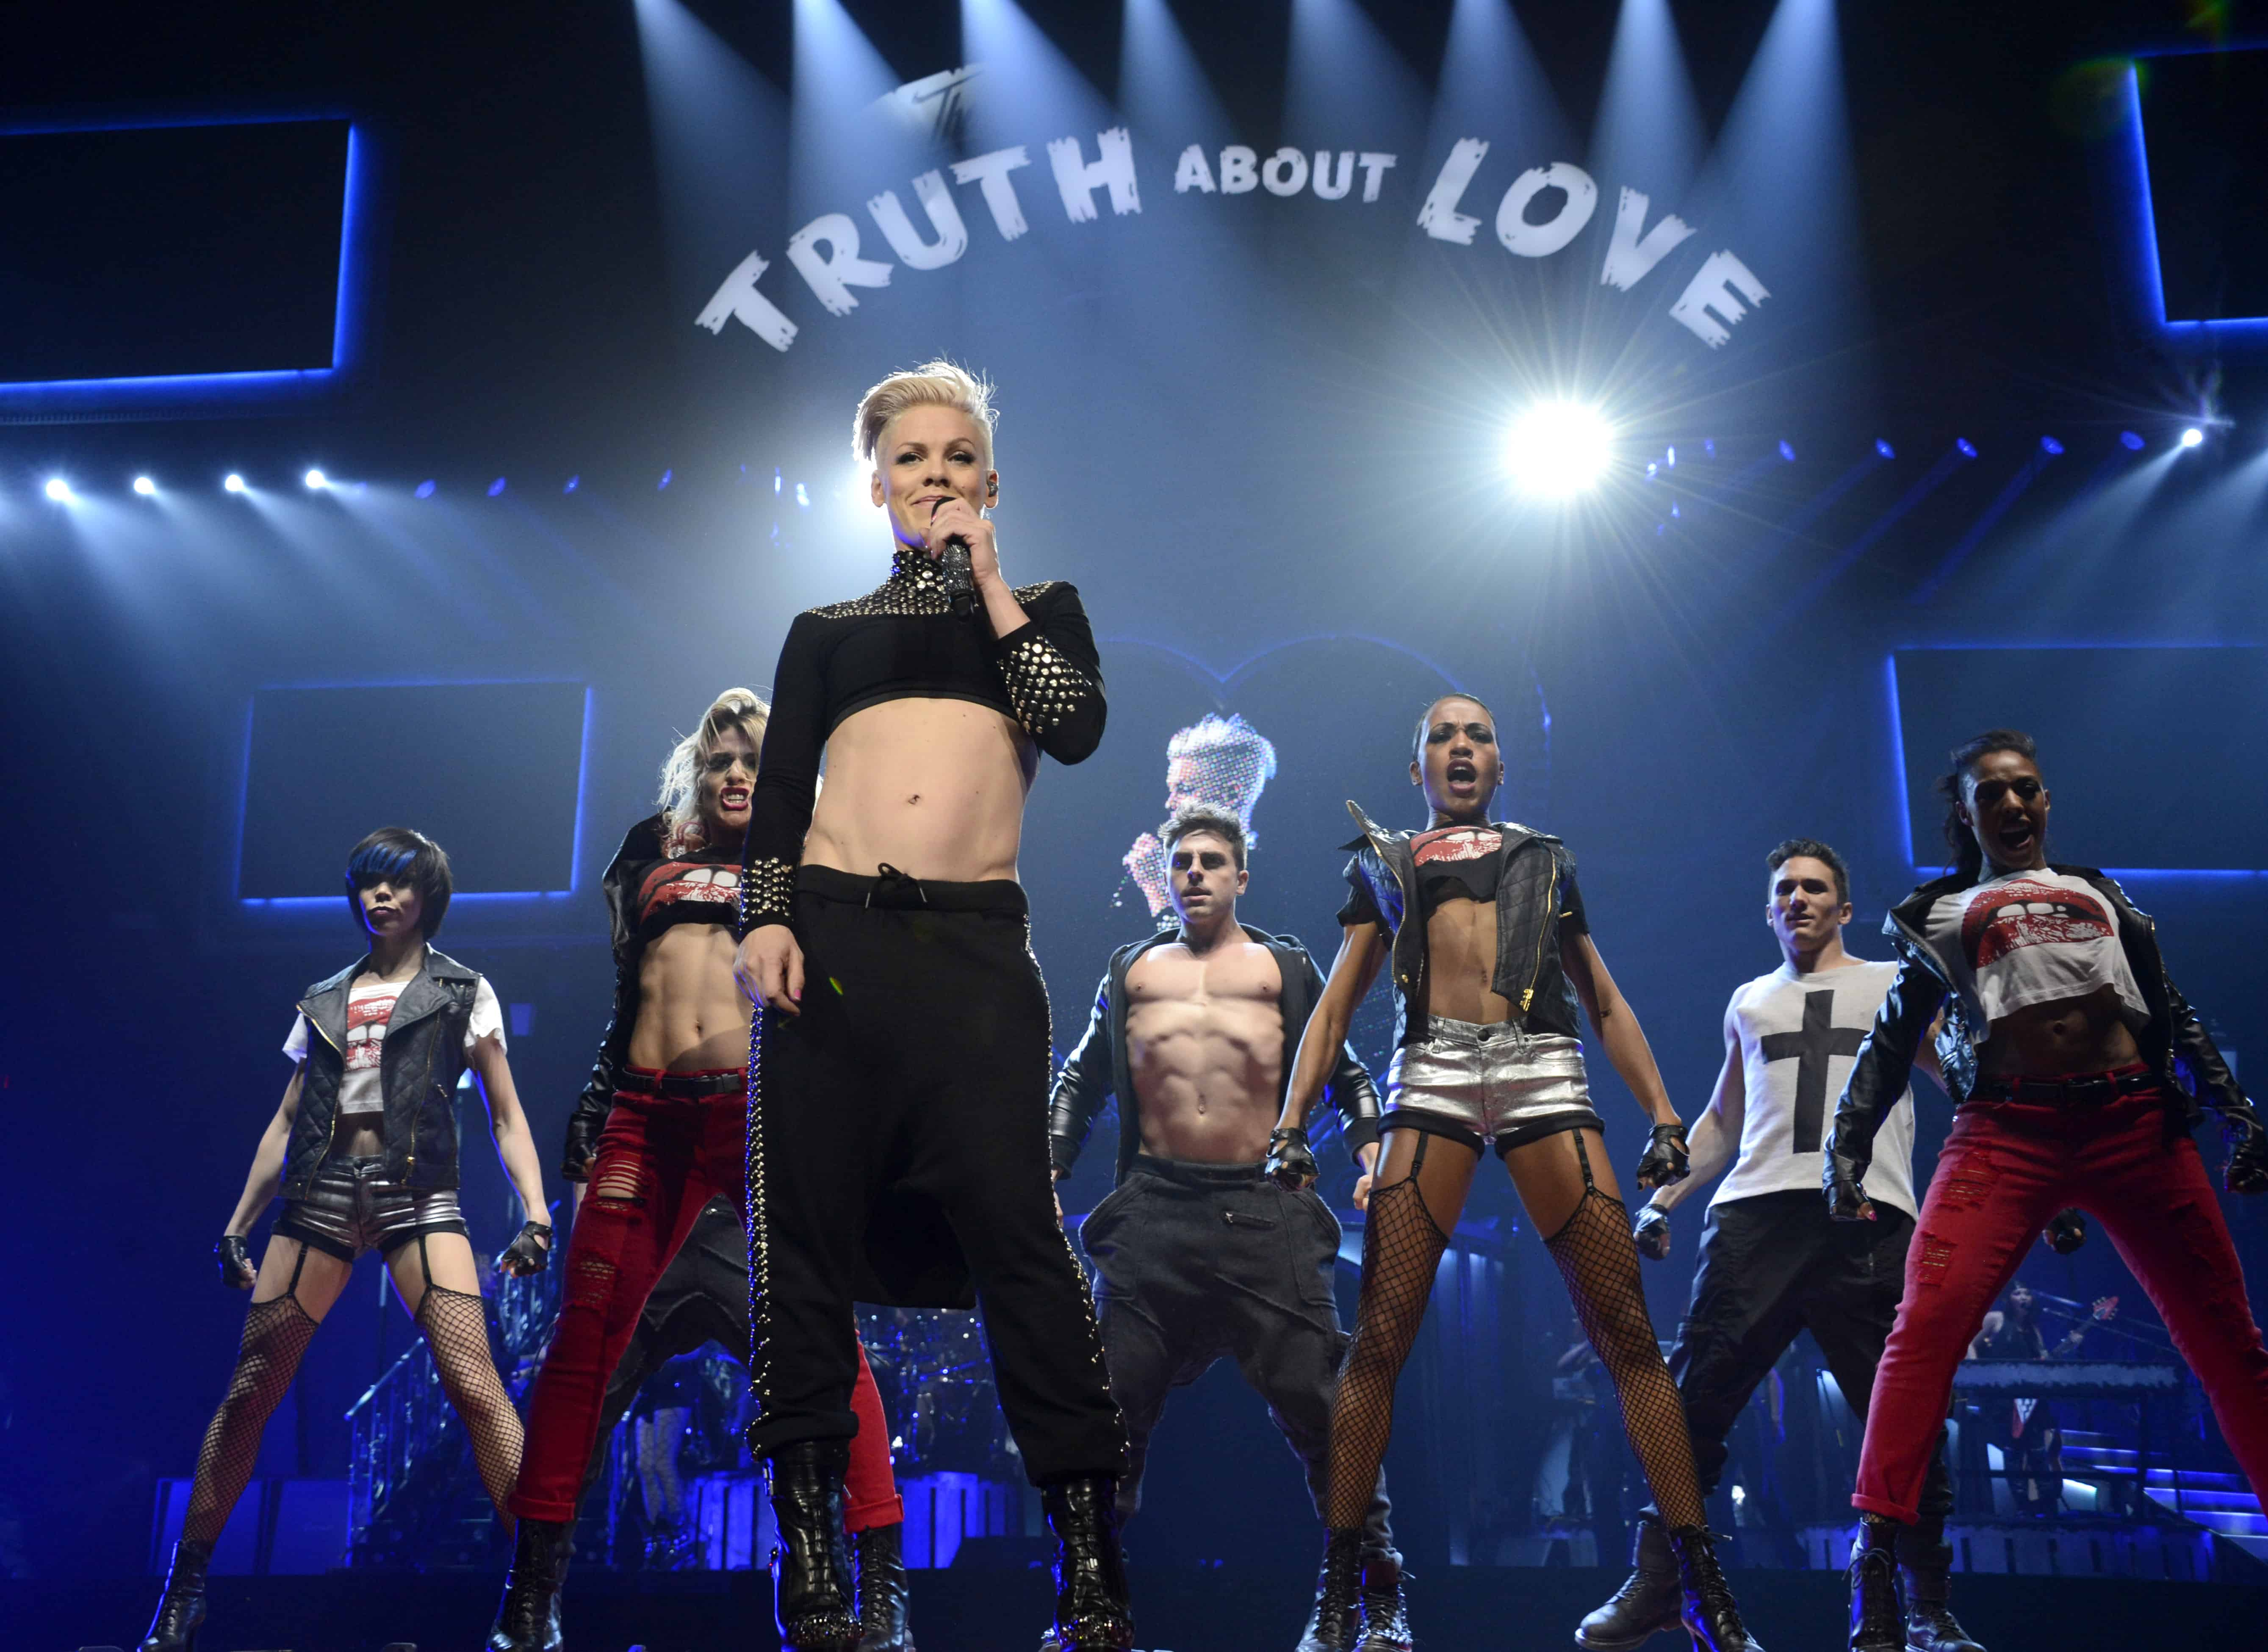 nk Kicks Off Her    The Truth About Love    Tour With a Bang The Truth About Love Tour